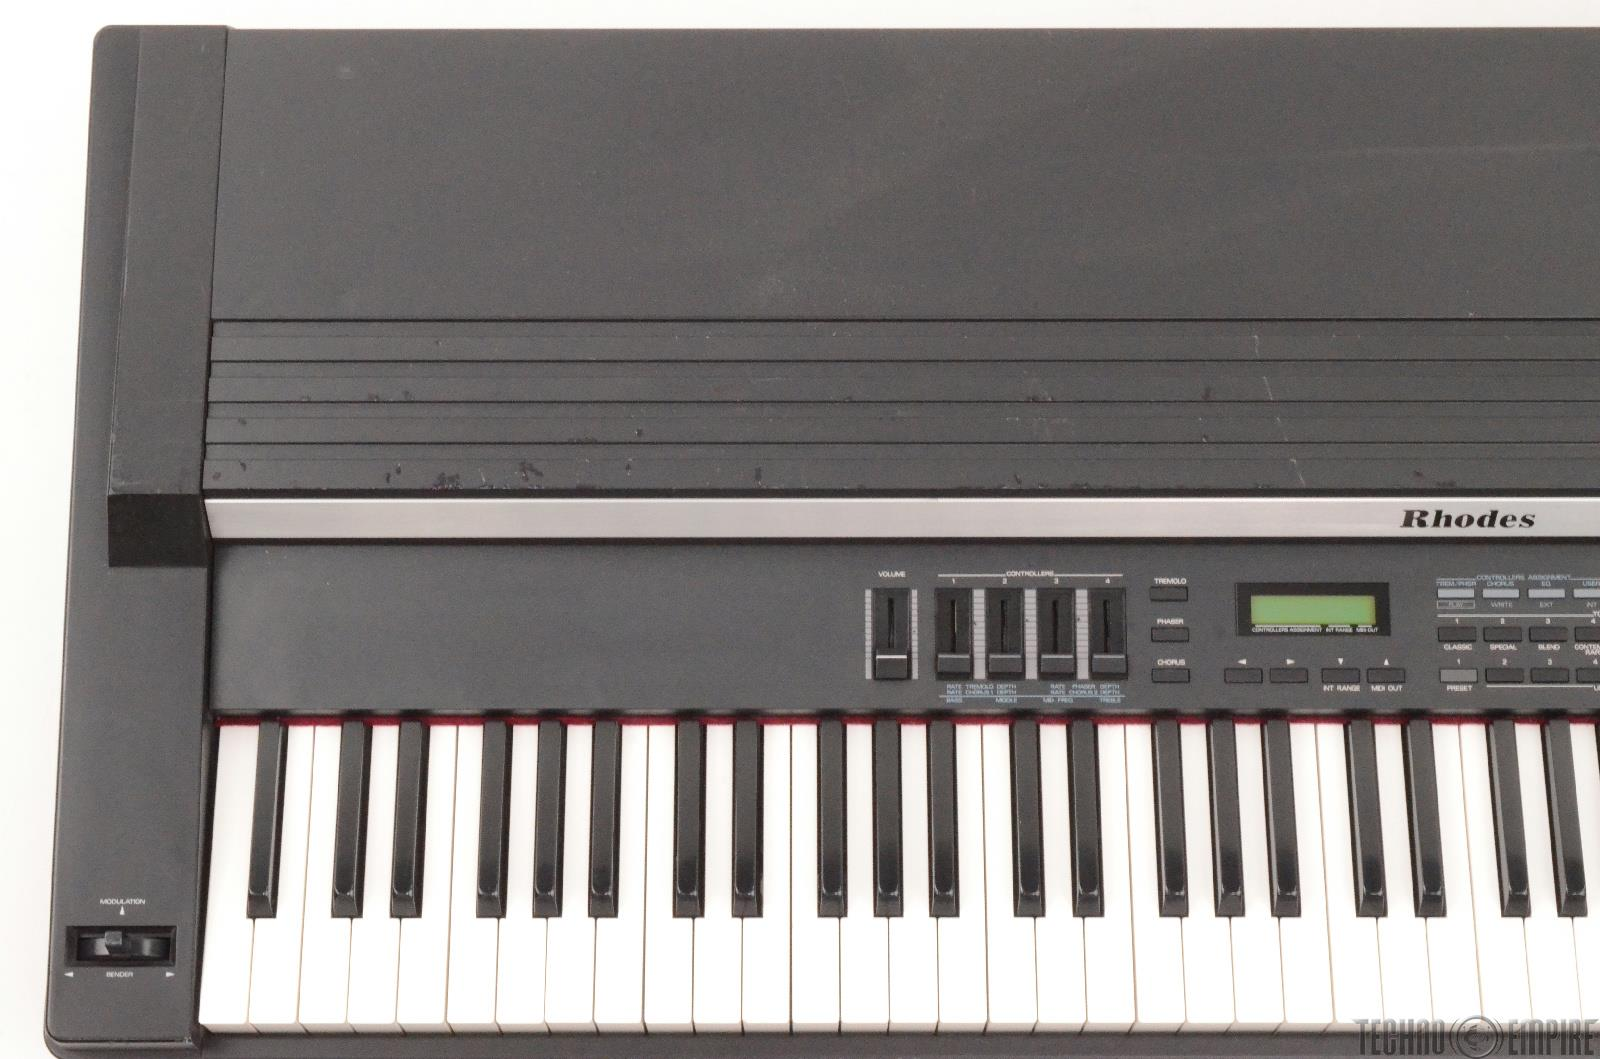 rhodes mk 80 digital electric piano weighted 88 key keyboard by roland 26125. Black Bedroom Furniture Sets. Home Design Ideas